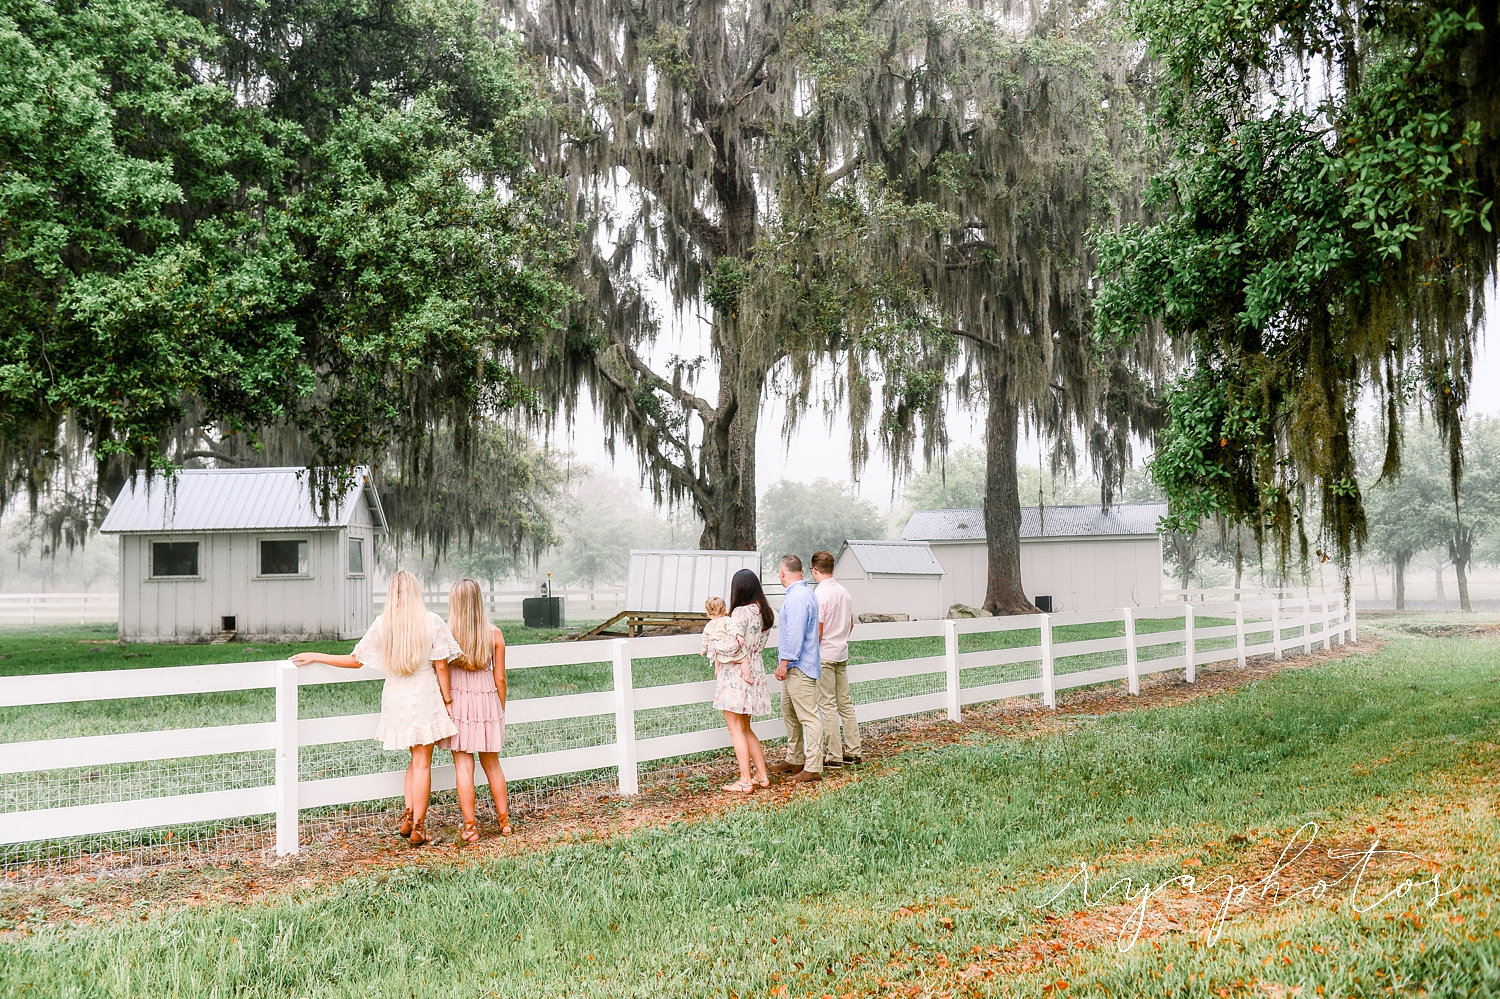 family looking into farm pen, 5 people and a baby, Rya Duncklee, Florida family photographer